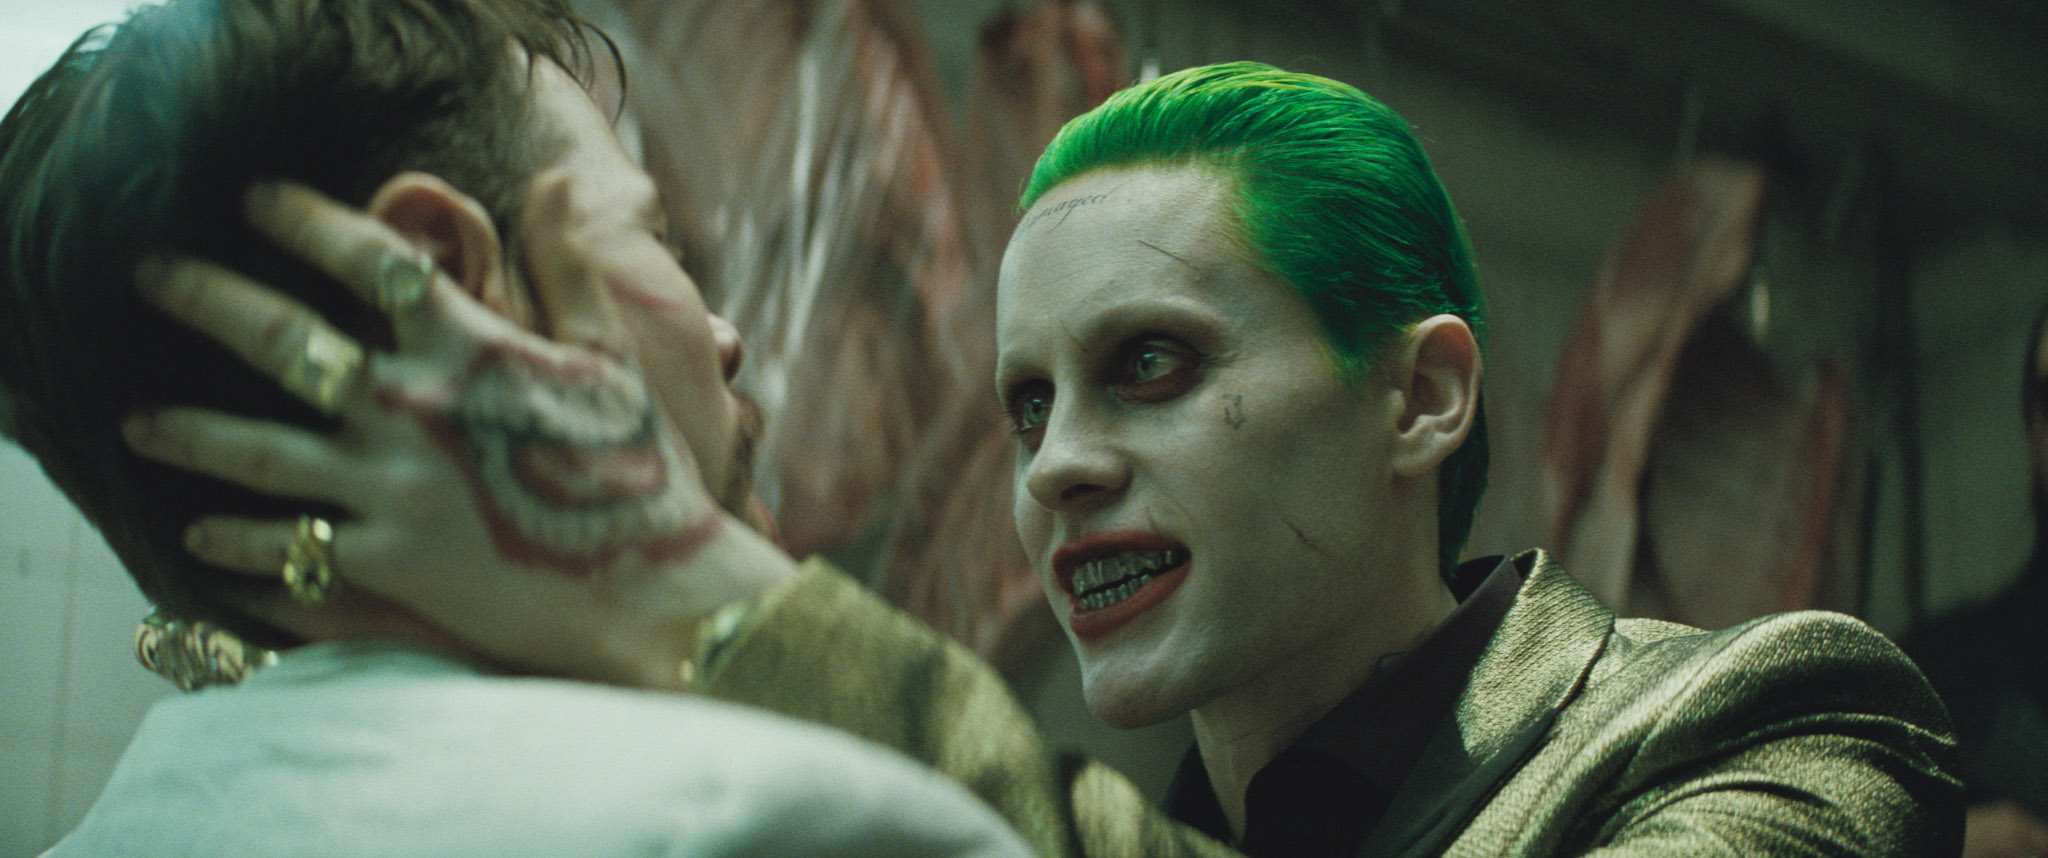 Jared Leto says Suicide Squad is just the beginning for the Joker TheFuss.co.uk